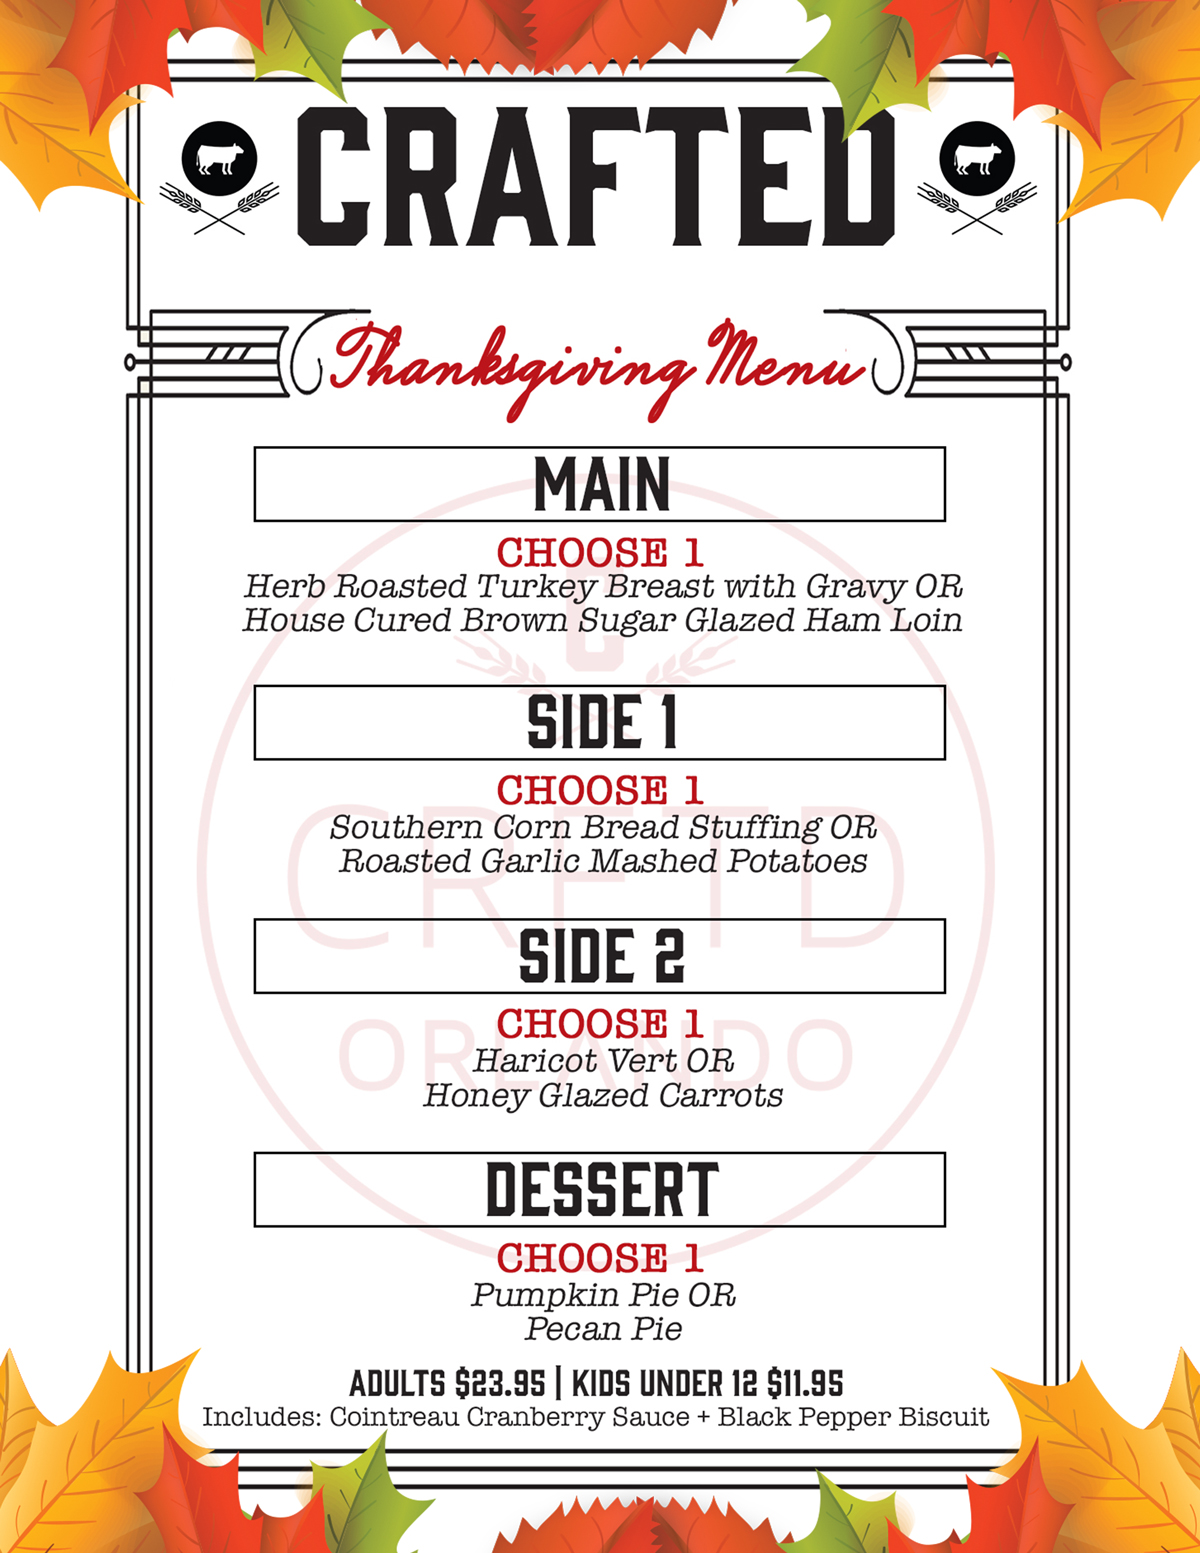 Crafted Thanksgiving Menu